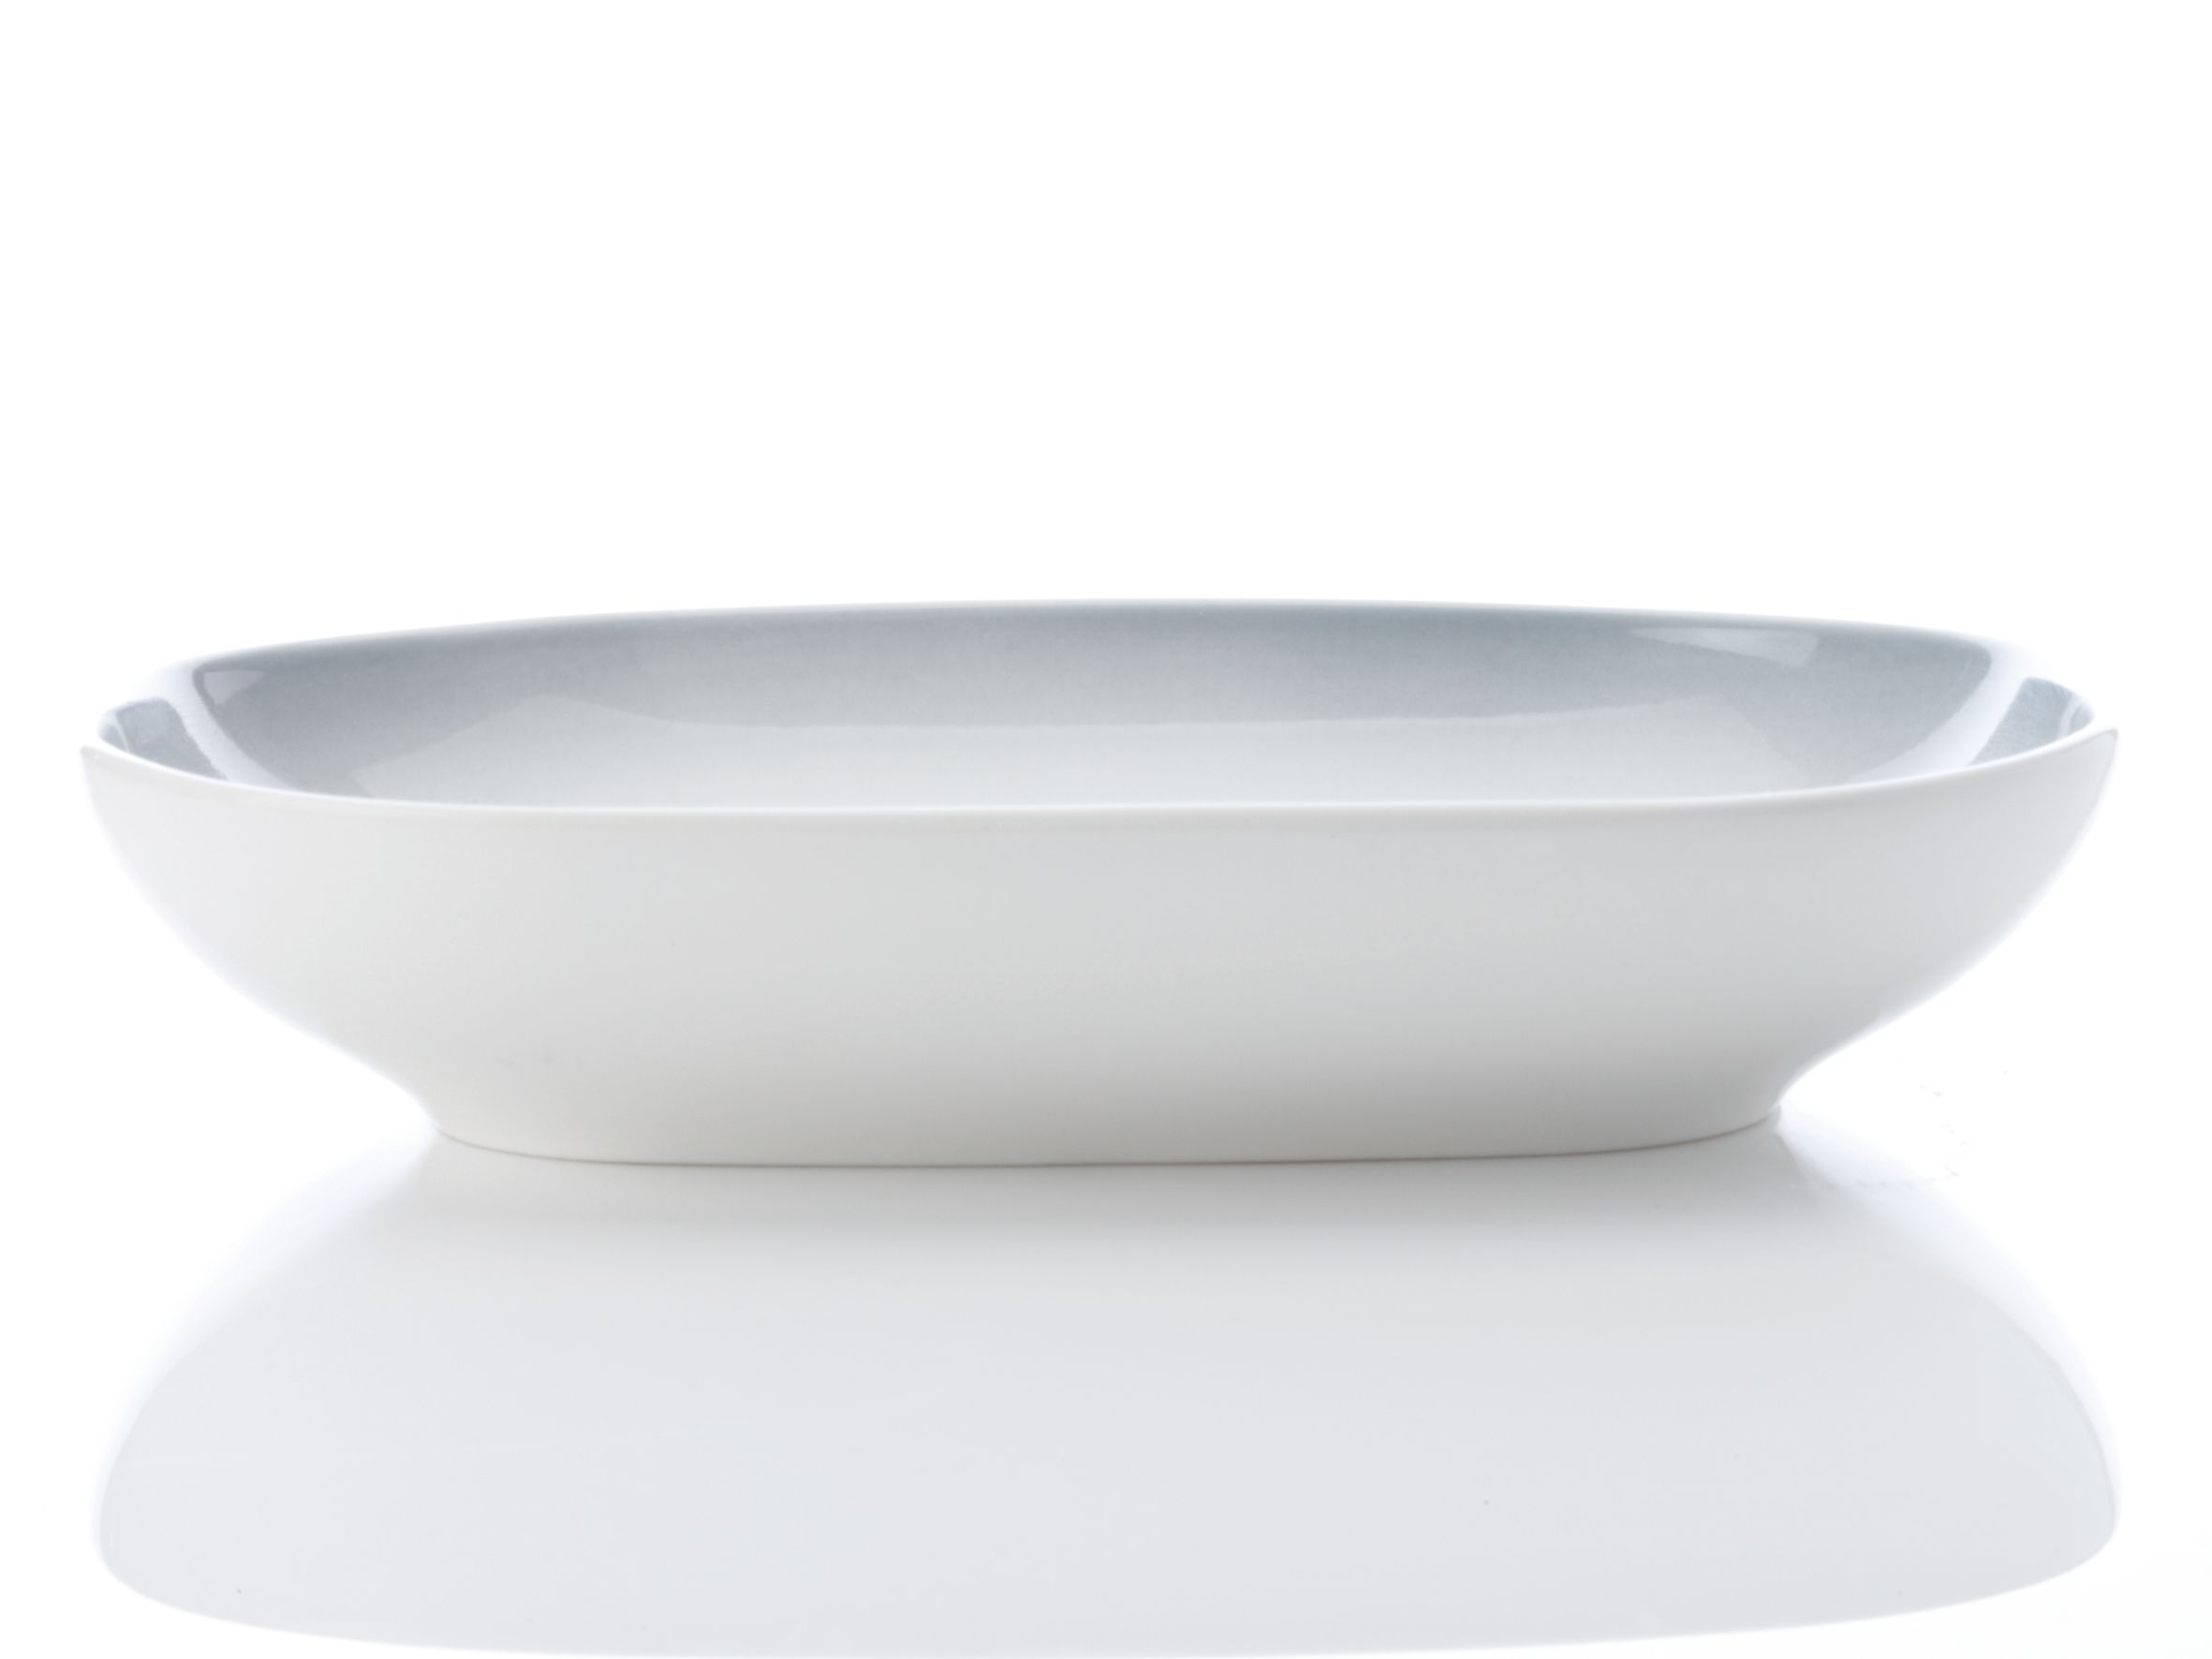 Bisou Soup Bowl Grey